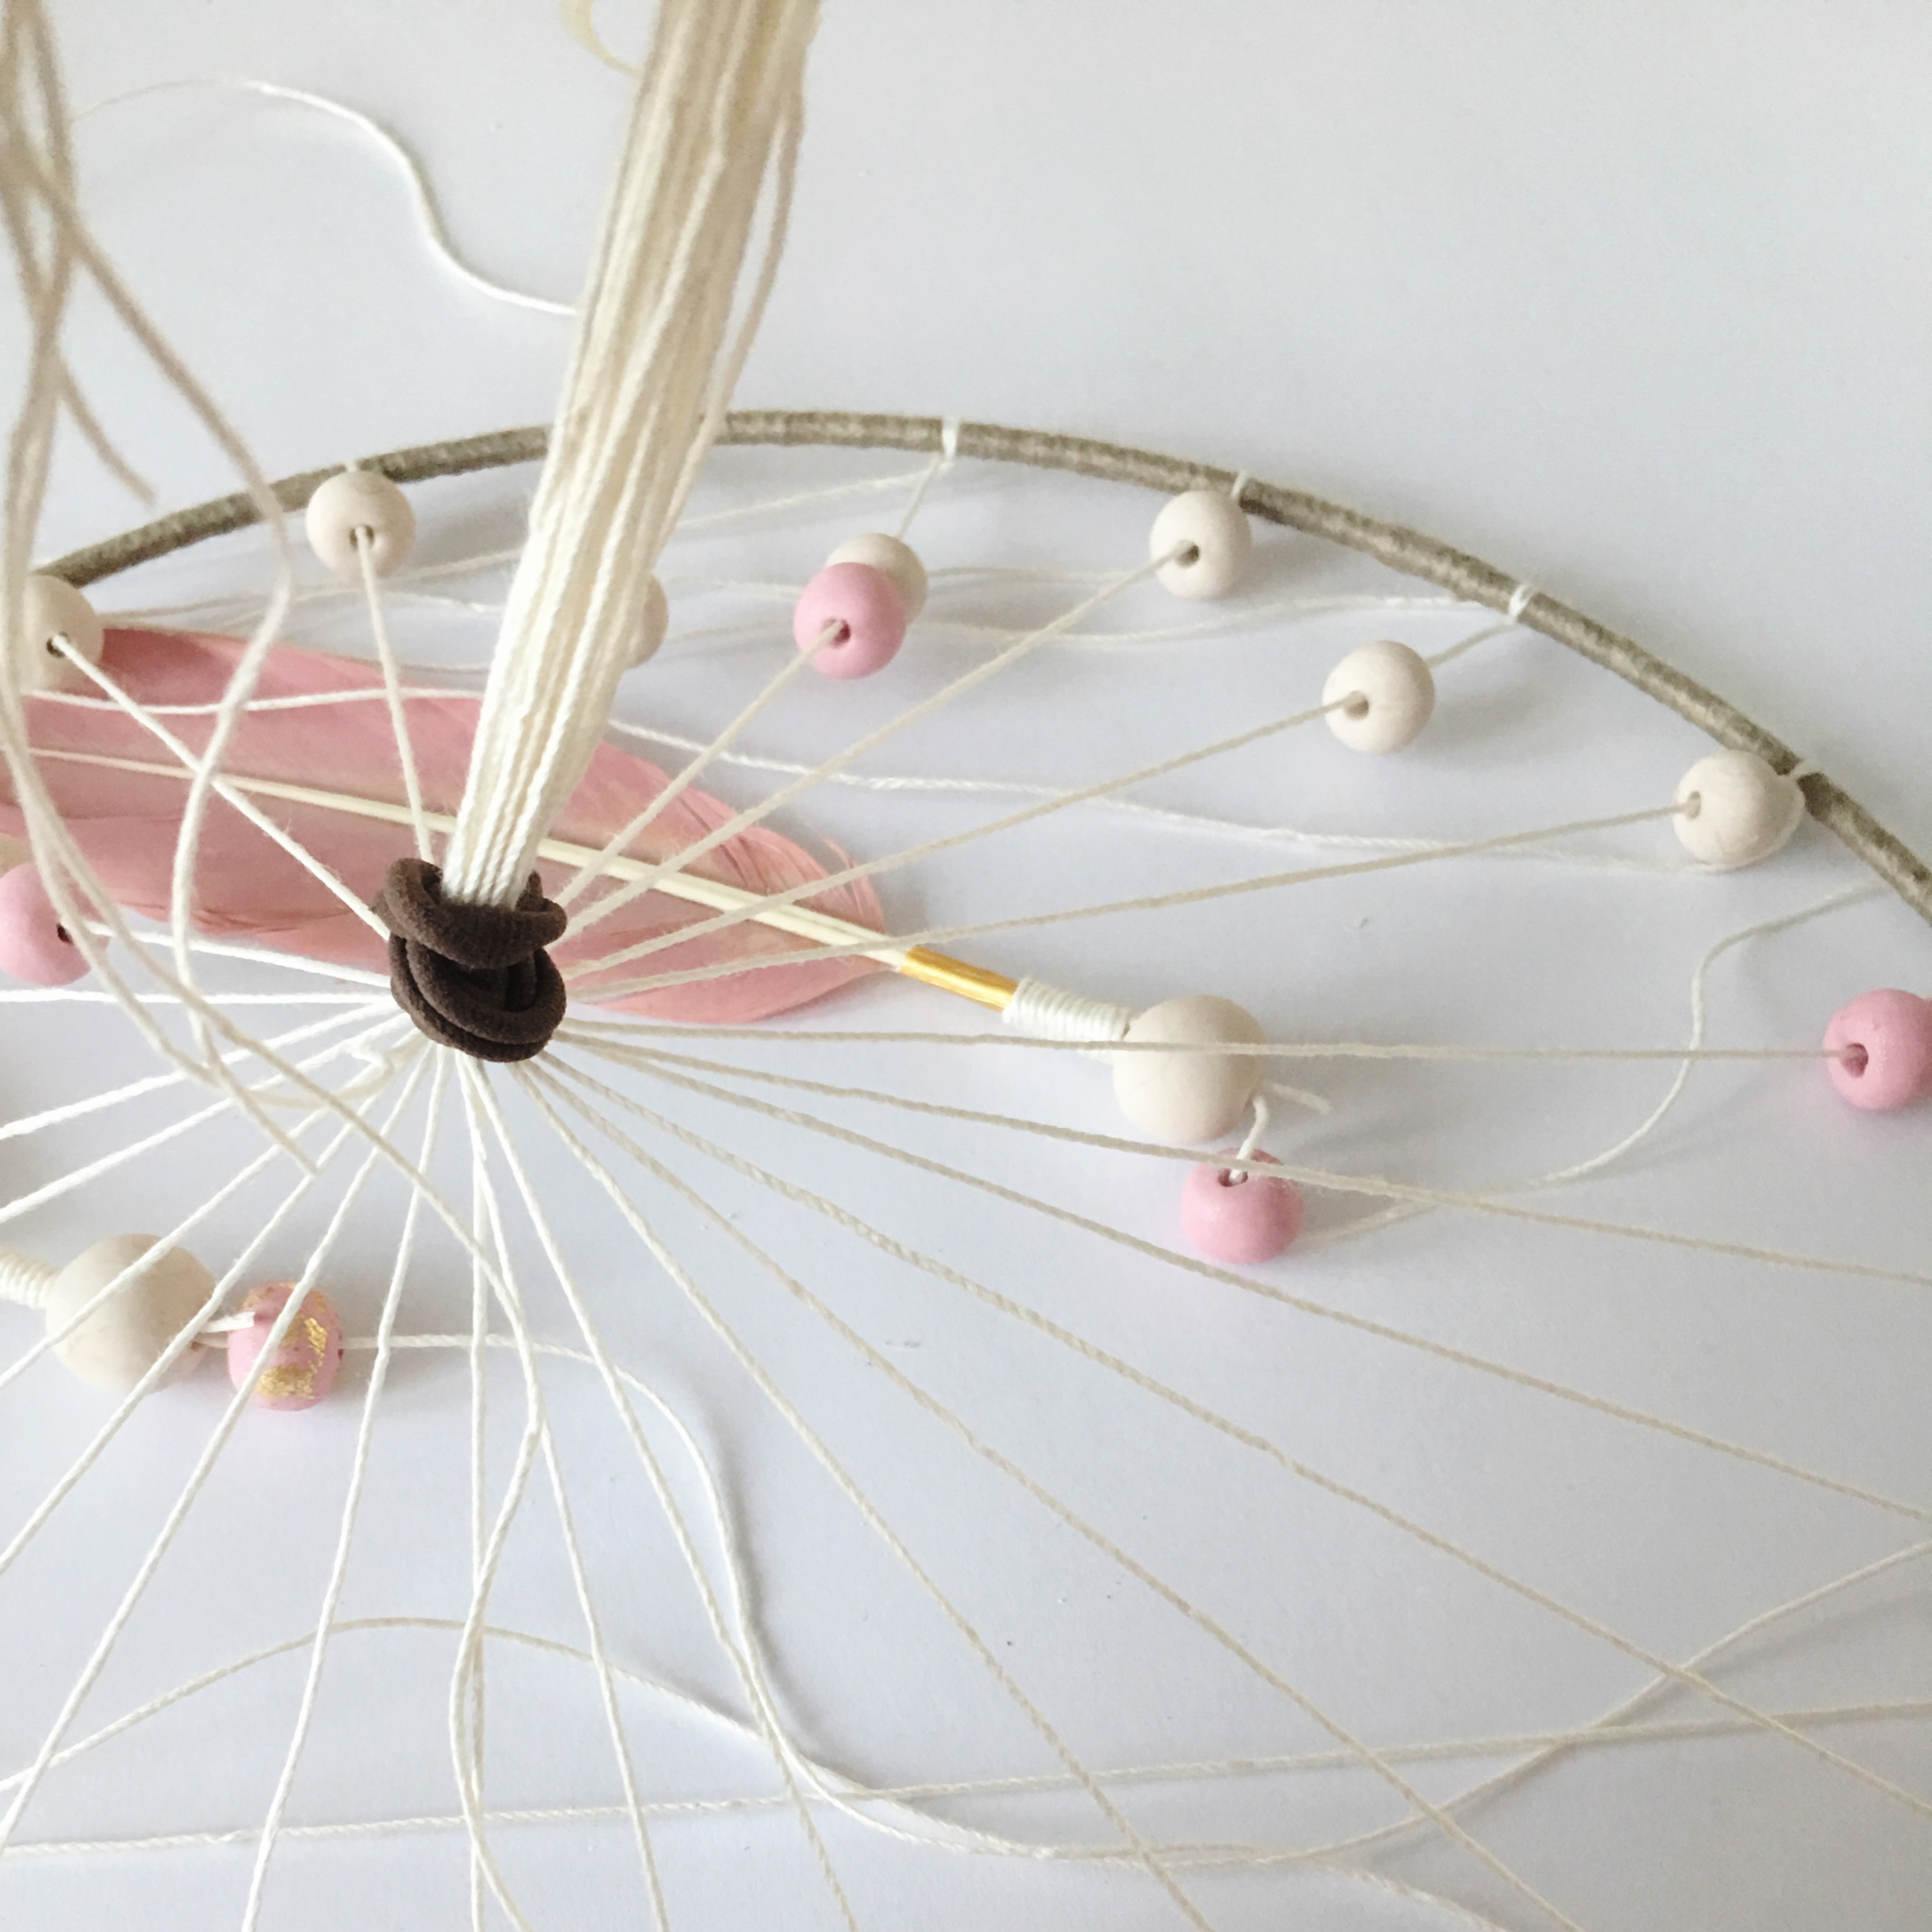 Nestworthy Tutorial: DIY Baby Mobile | www.nestlingcollective.com